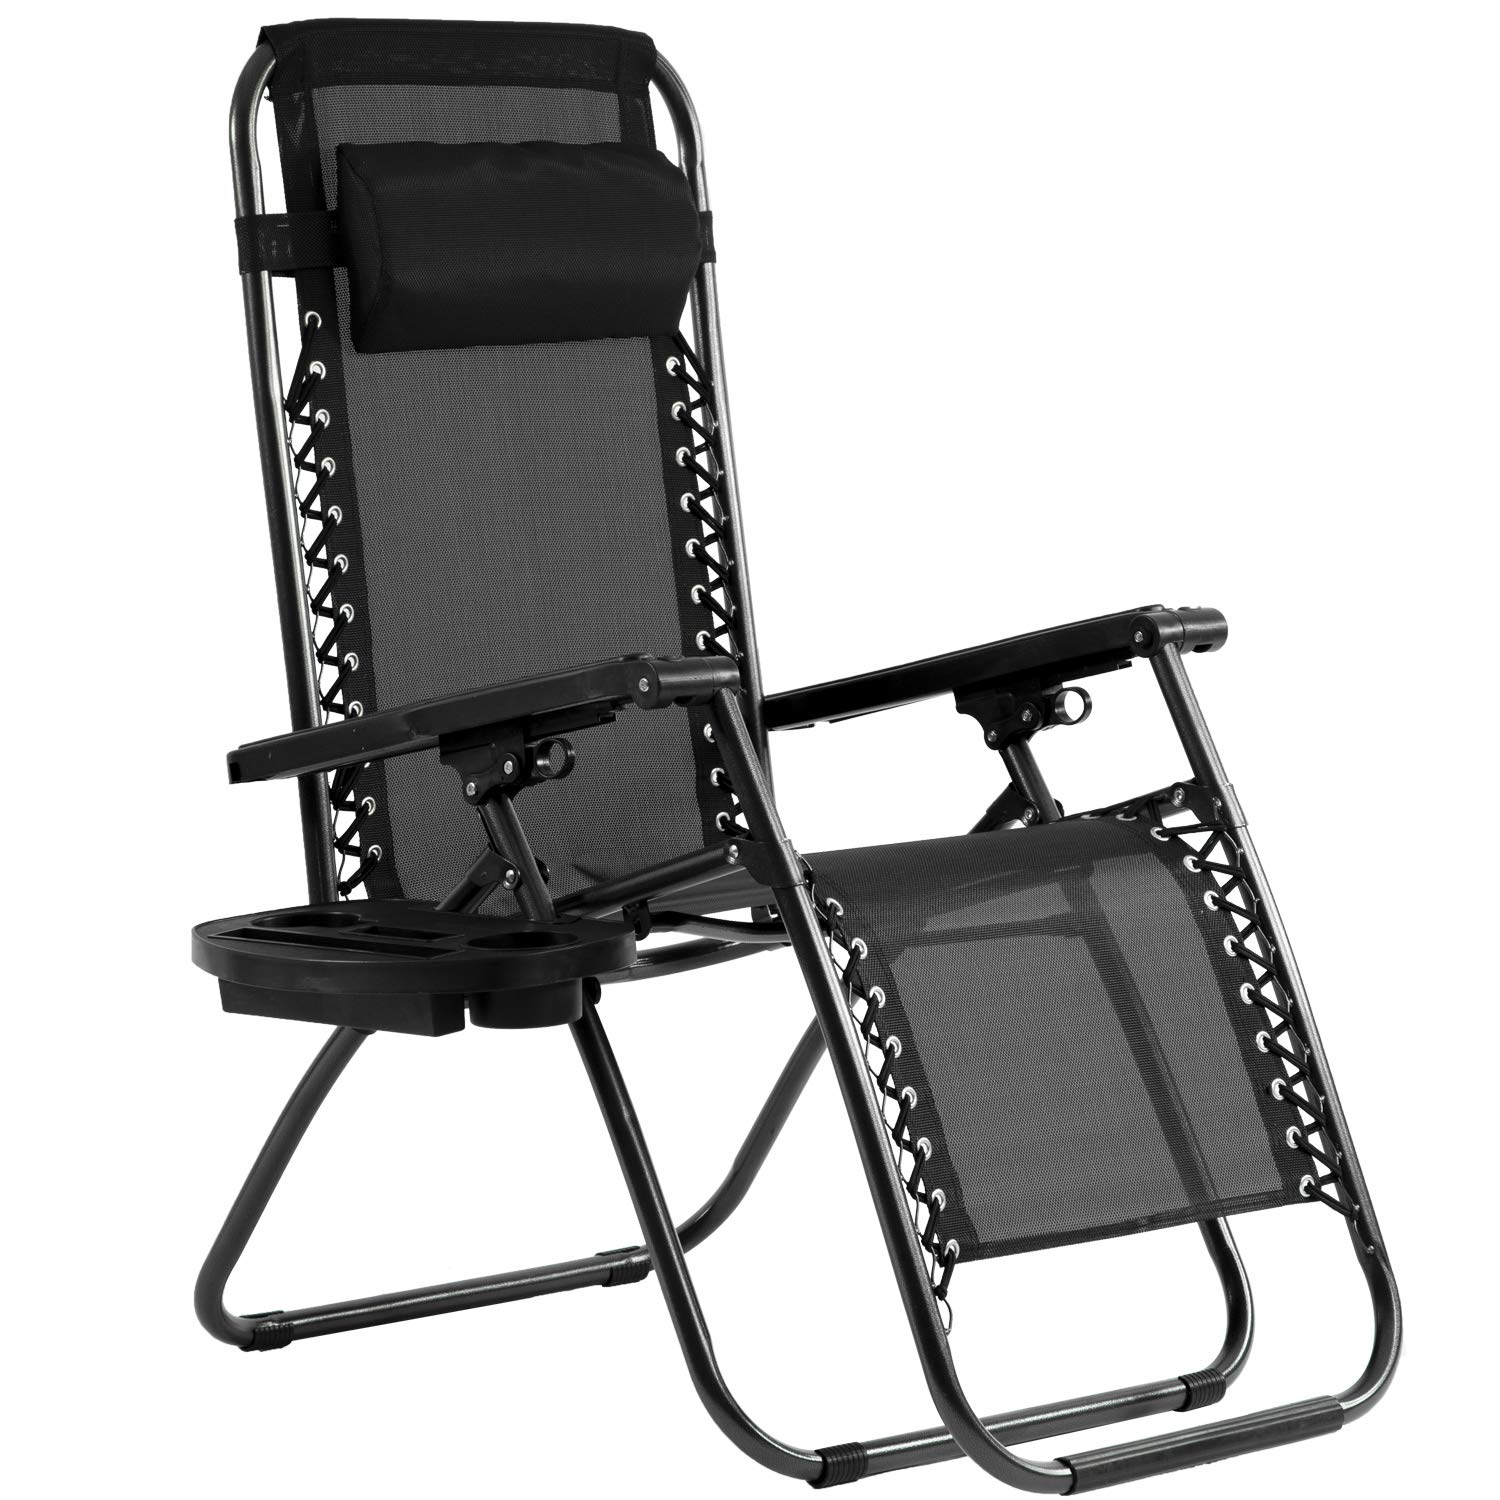 BestMassage Zero Gravity Lounge Patio Chairs with with Canopy Cup Holder, Black